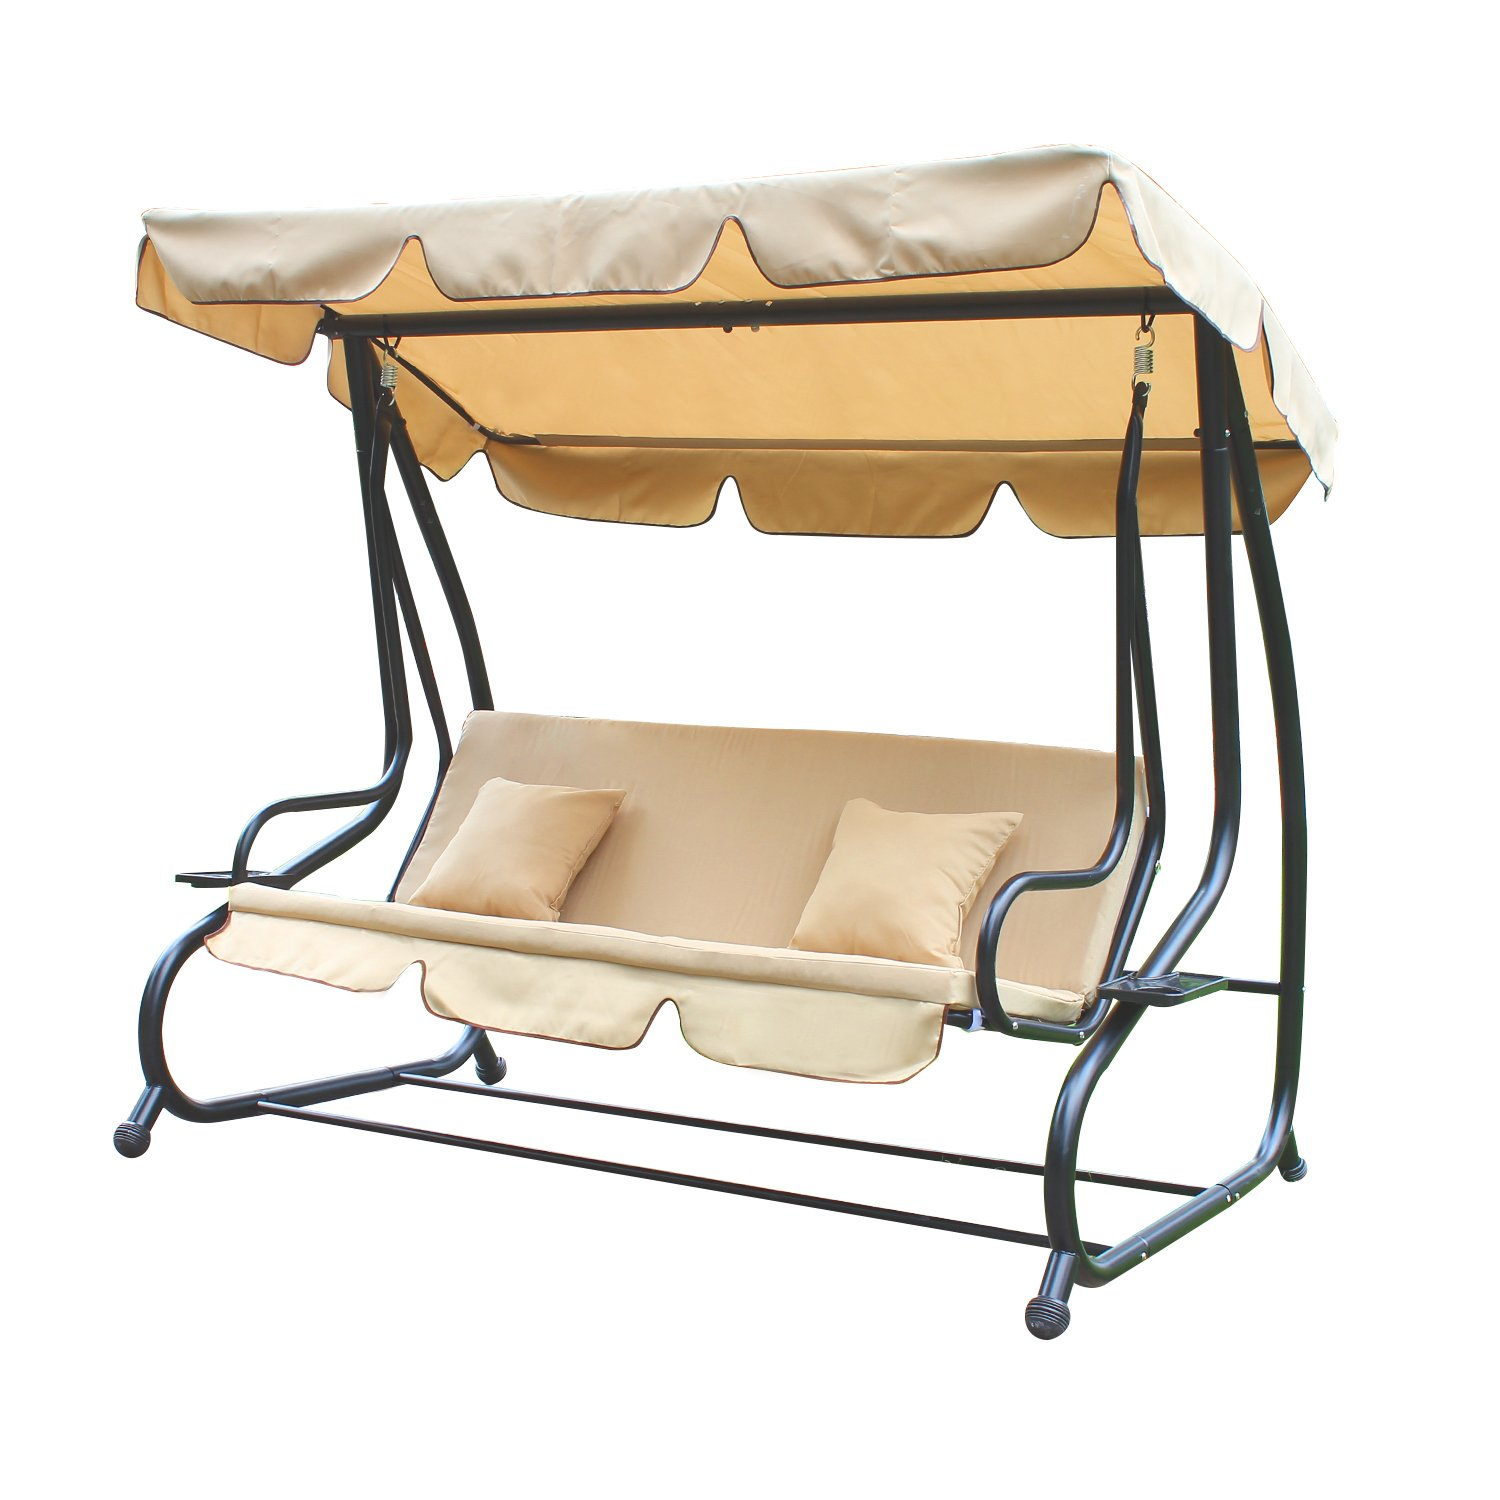 Outdoor Swing Bench: Adeco Canopy Awning Porch Swings Bench, Outdoor Chair For